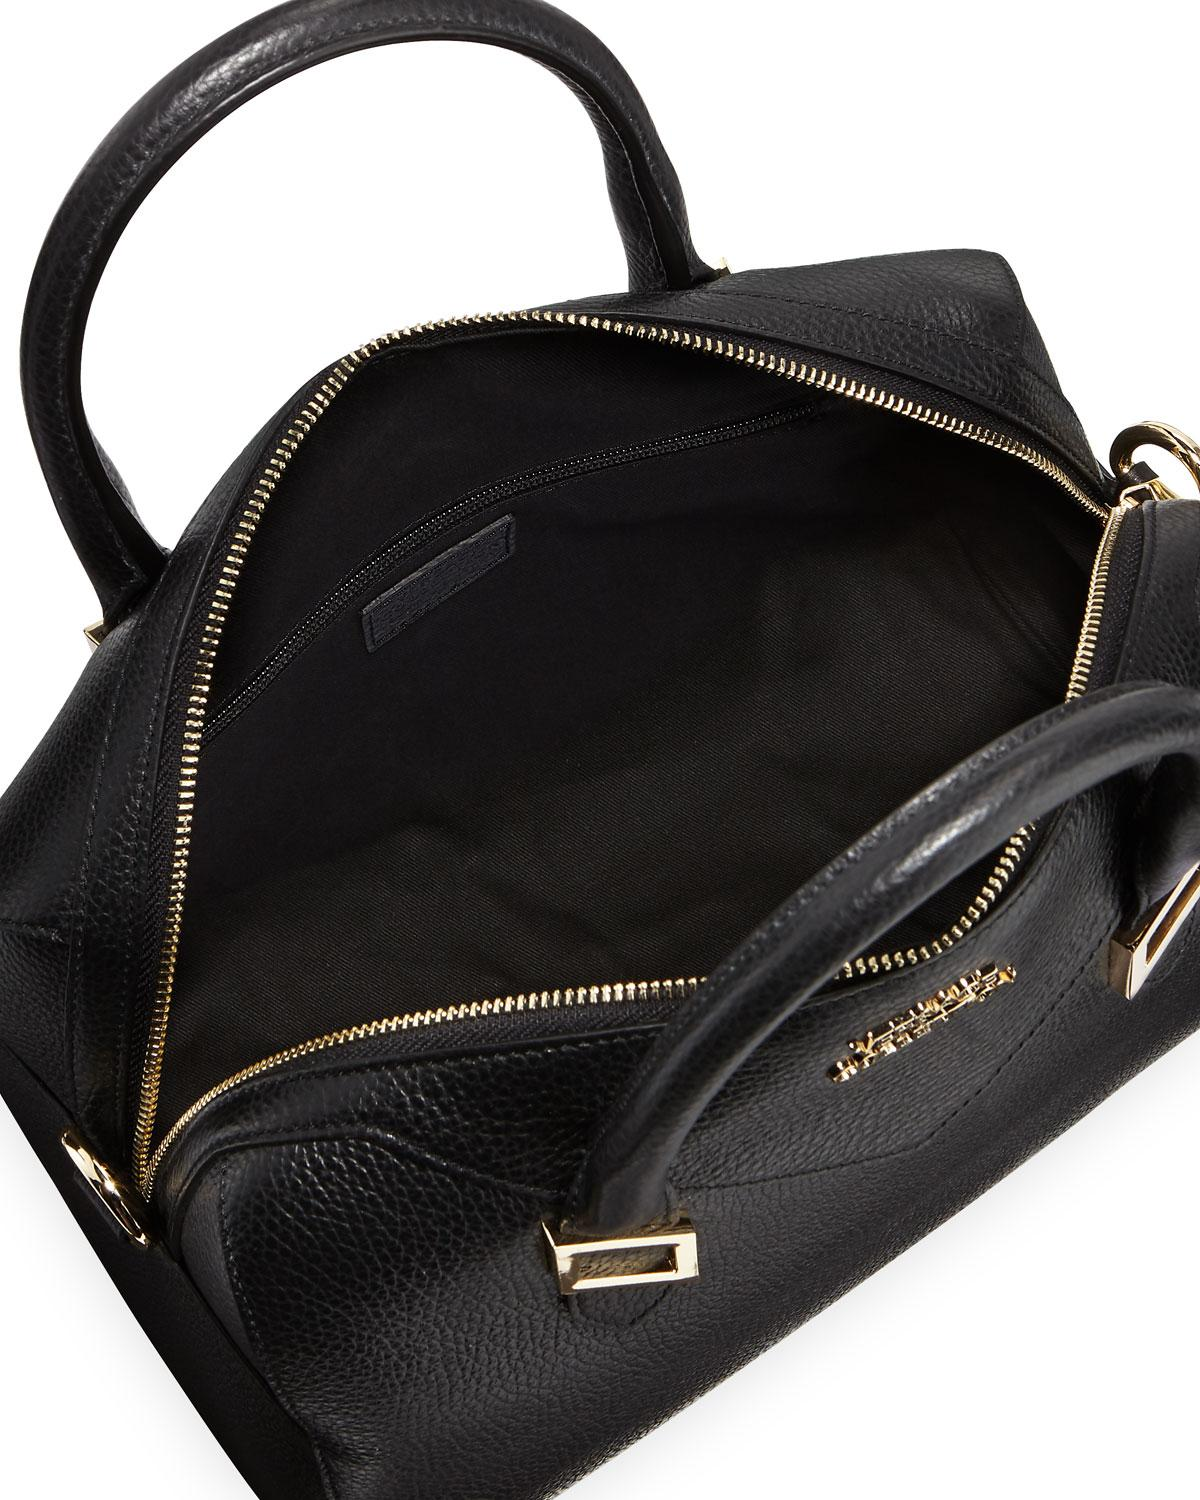 e76e666160a6 Lyst - Versace Pebbled Leather Medium Top-handle Bag in Black for Men